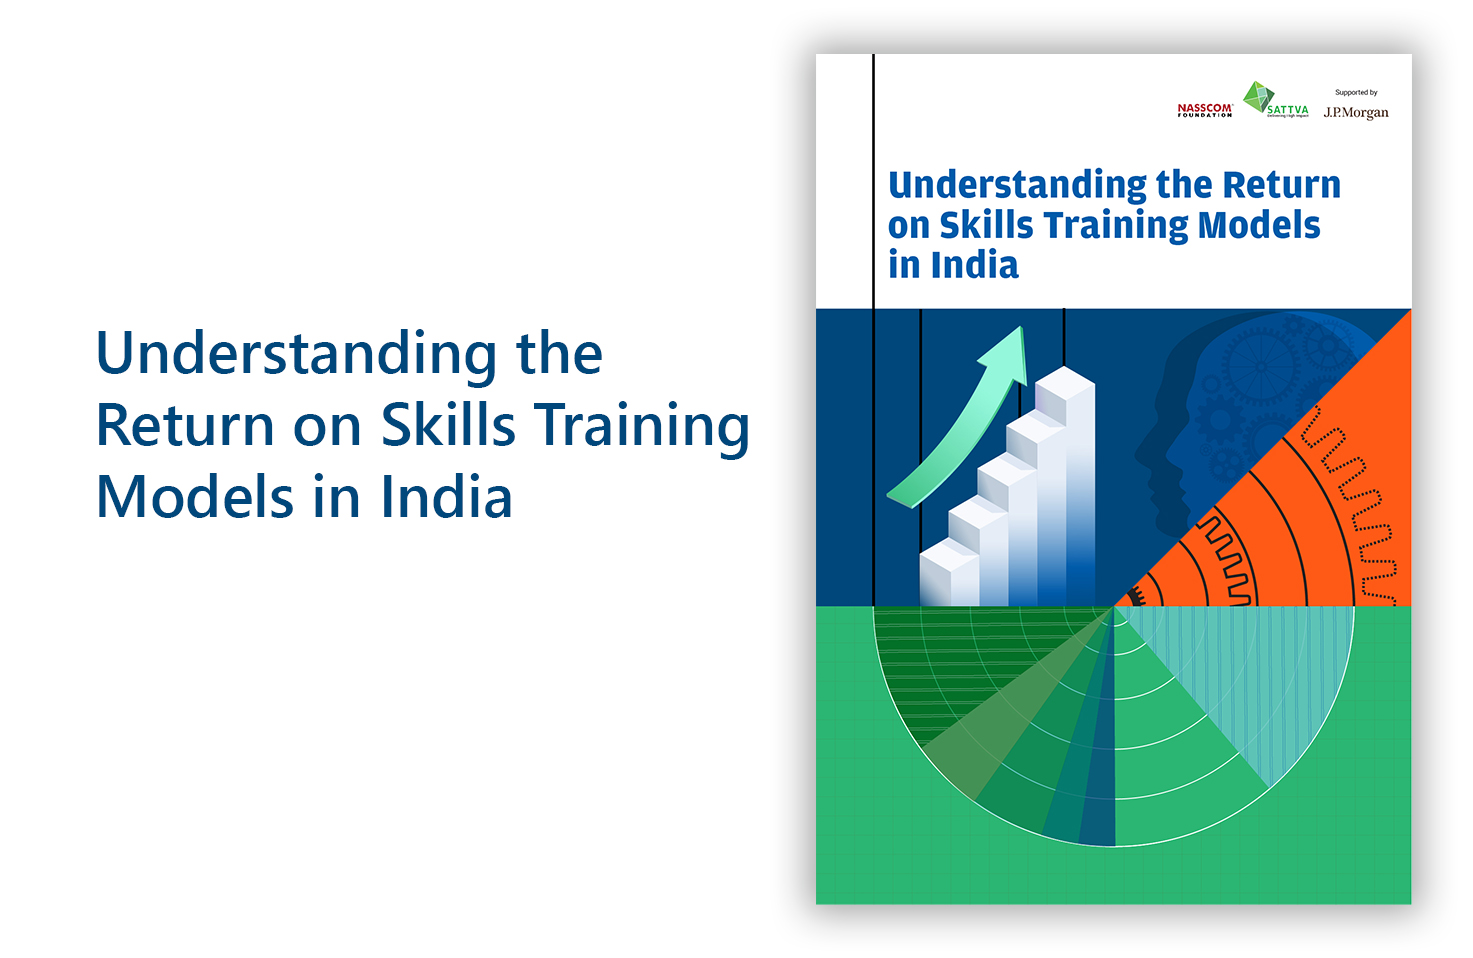 COVID-19 triggers a shift in skills training models: report